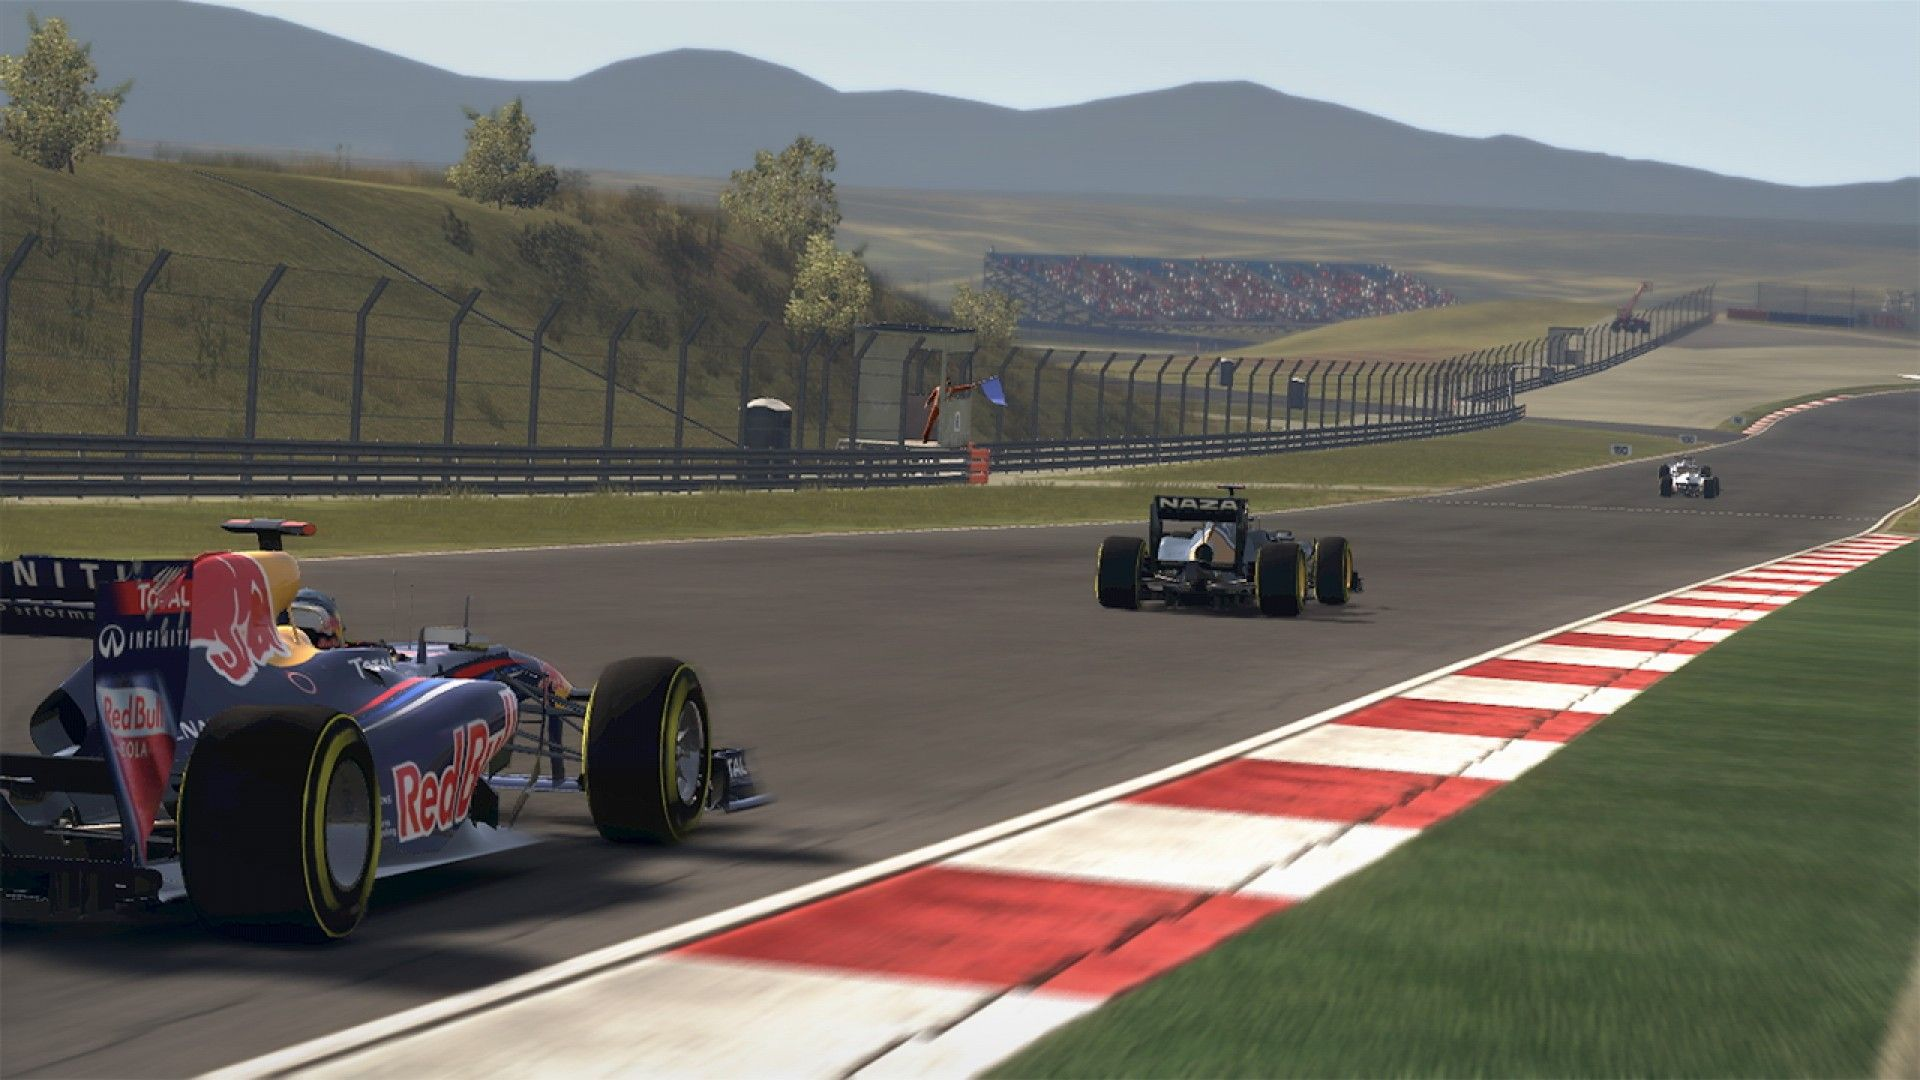 f1 2011 on steam rh store steampowered com 2013 F1 Cars F1 Driving